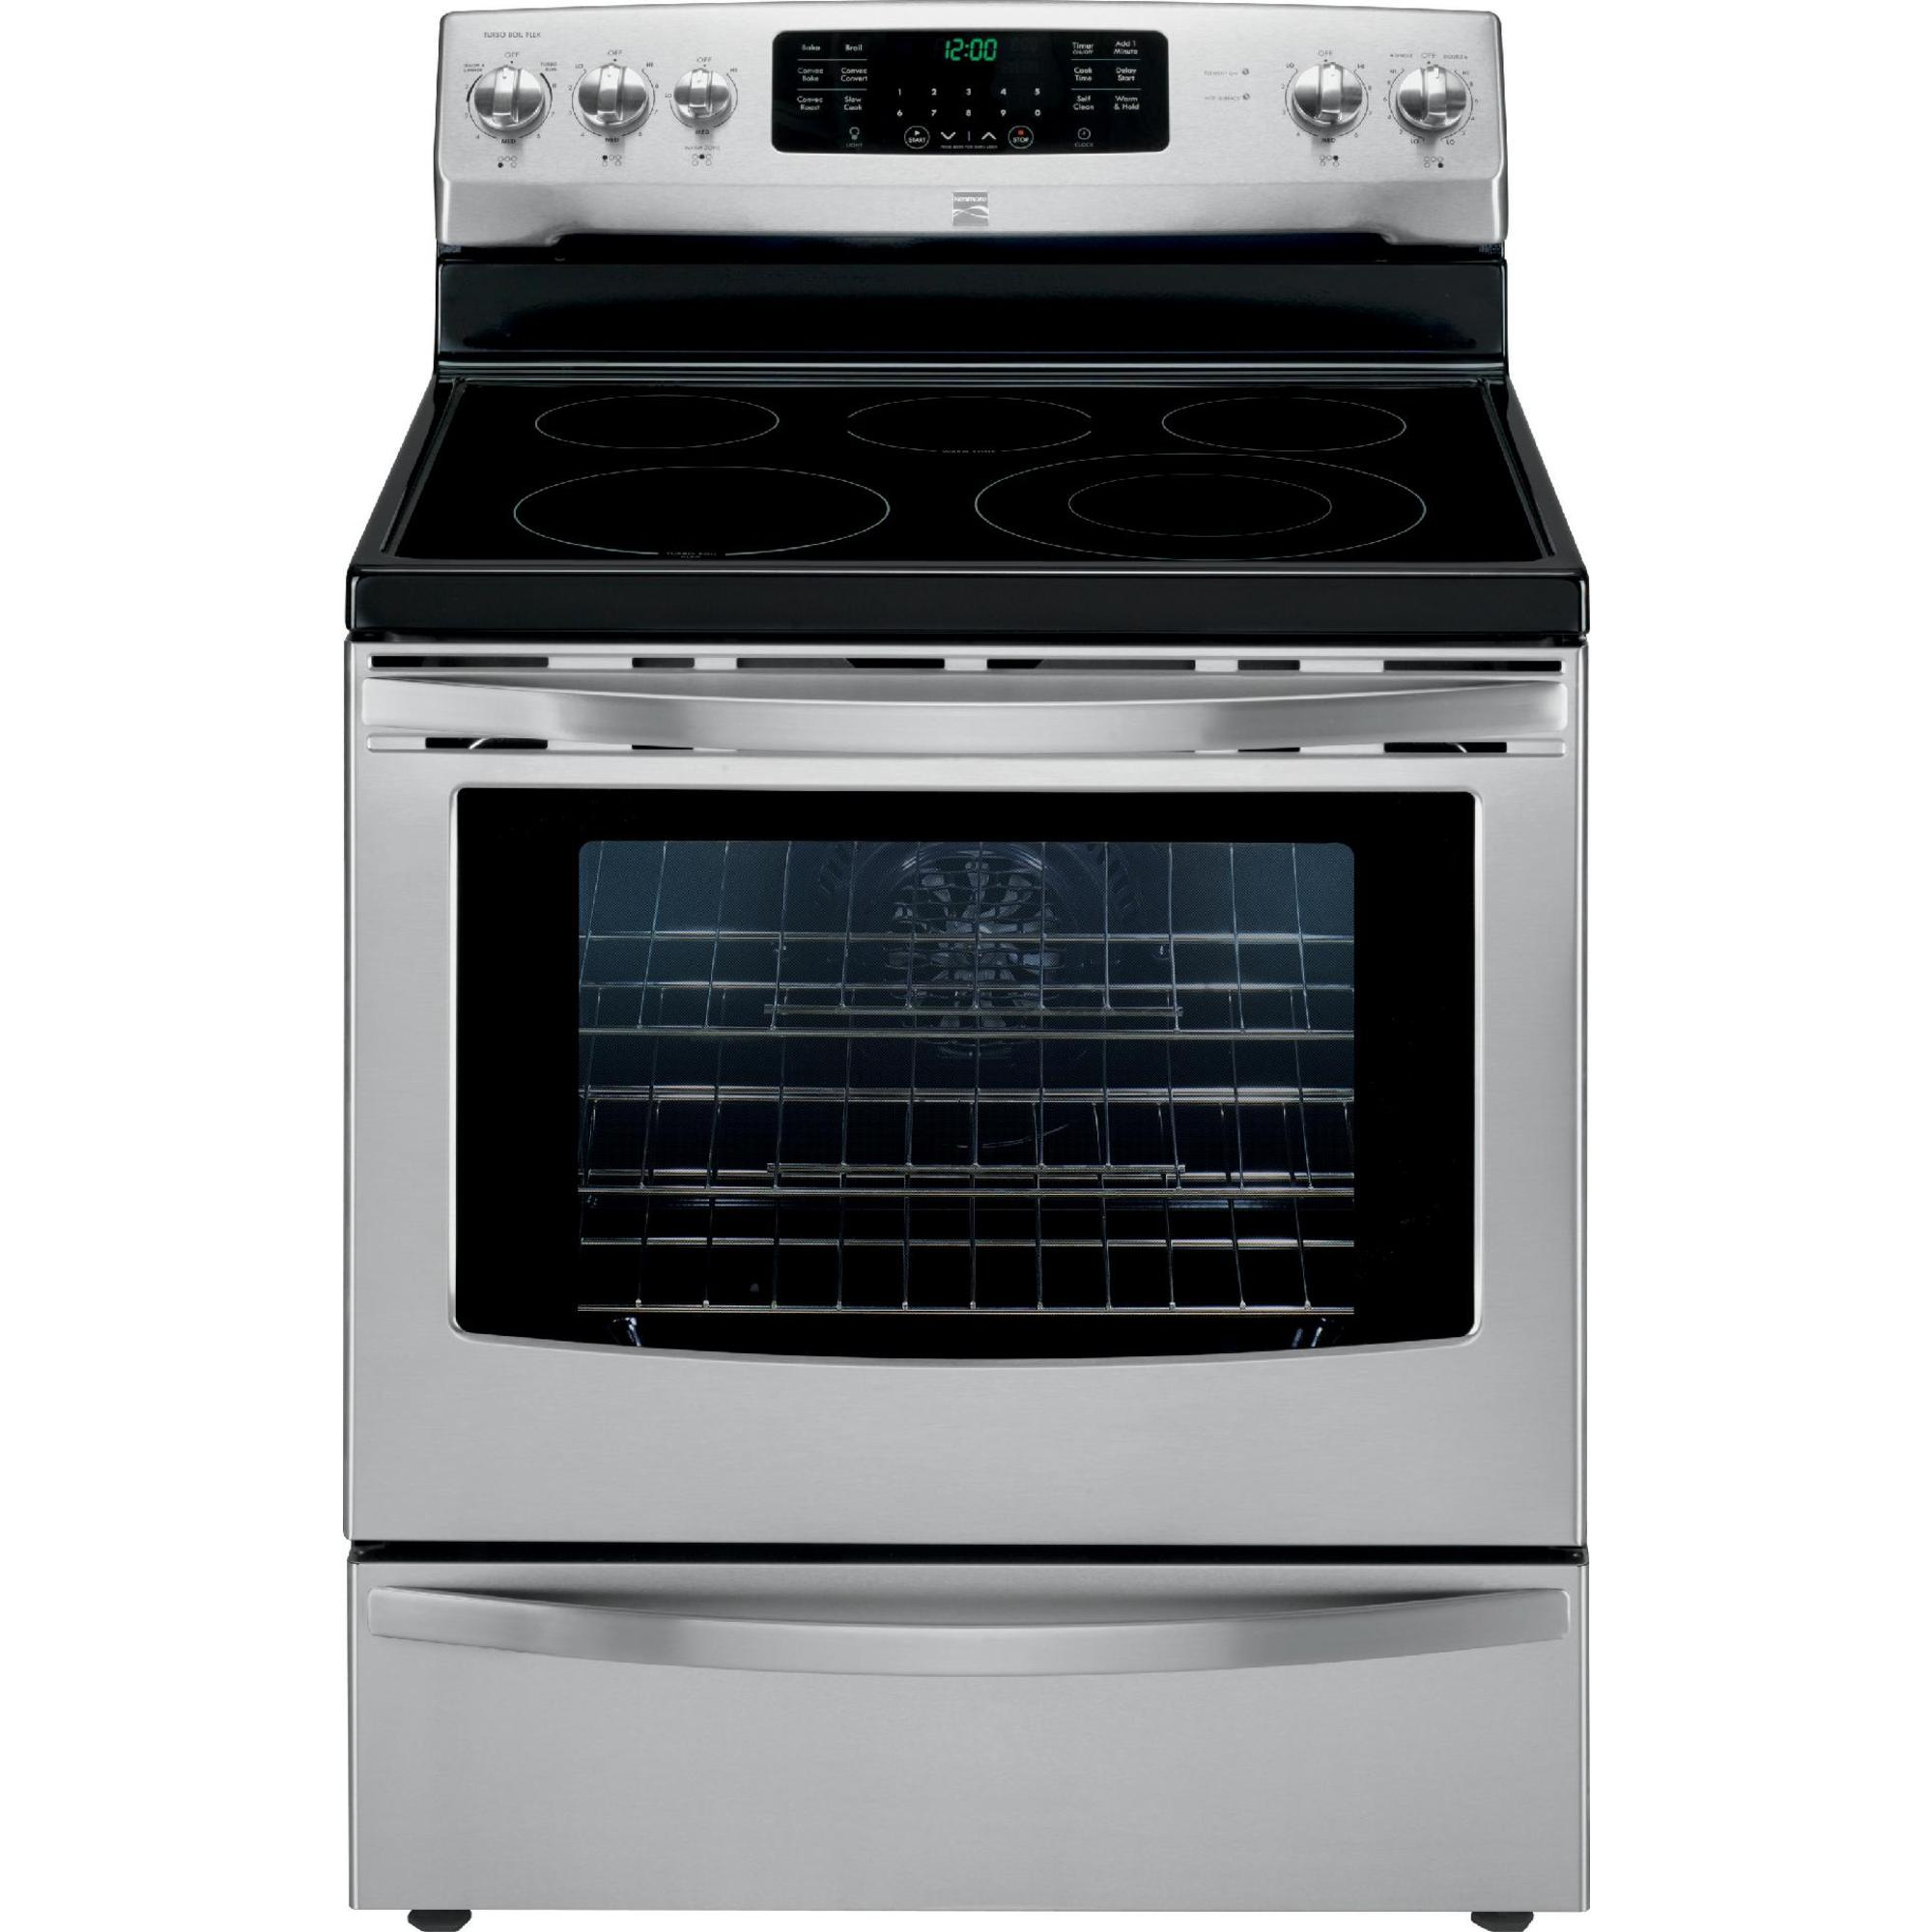 94203-5-7-cu-ft-Electric-Range-w-True-Convection-Stainless-Steel